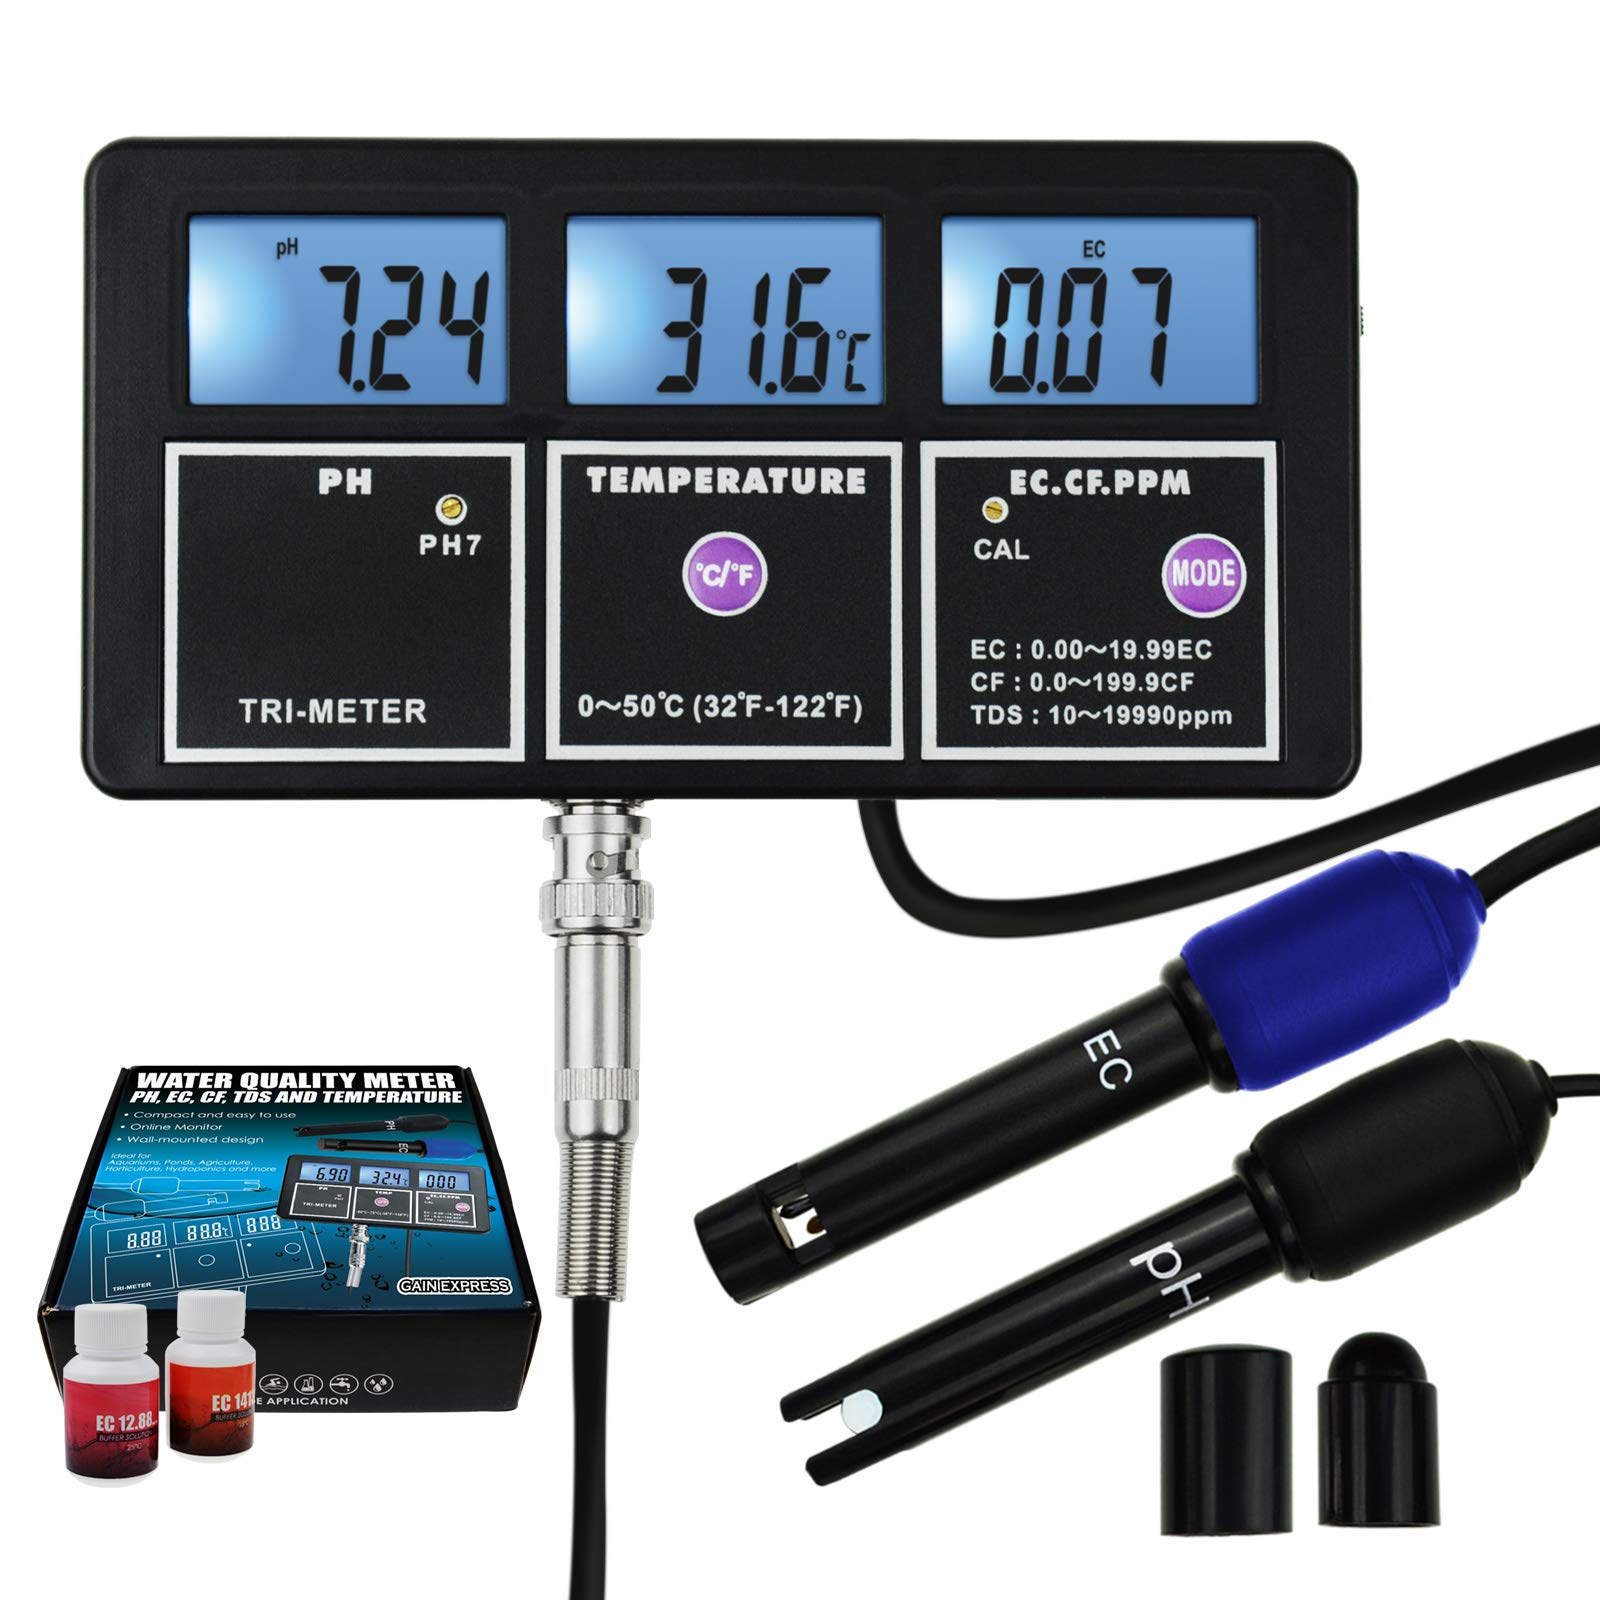 5-in-1 Water Quality Multi-Parameter PH EC CF TDS (ppm) Temperature Test Meter Backlight, Wall-mountable Rechargeable Continuous Monitor Tester, Aquariums Hydroponics Pool Fish Tank Pond Drinking by Gain Express